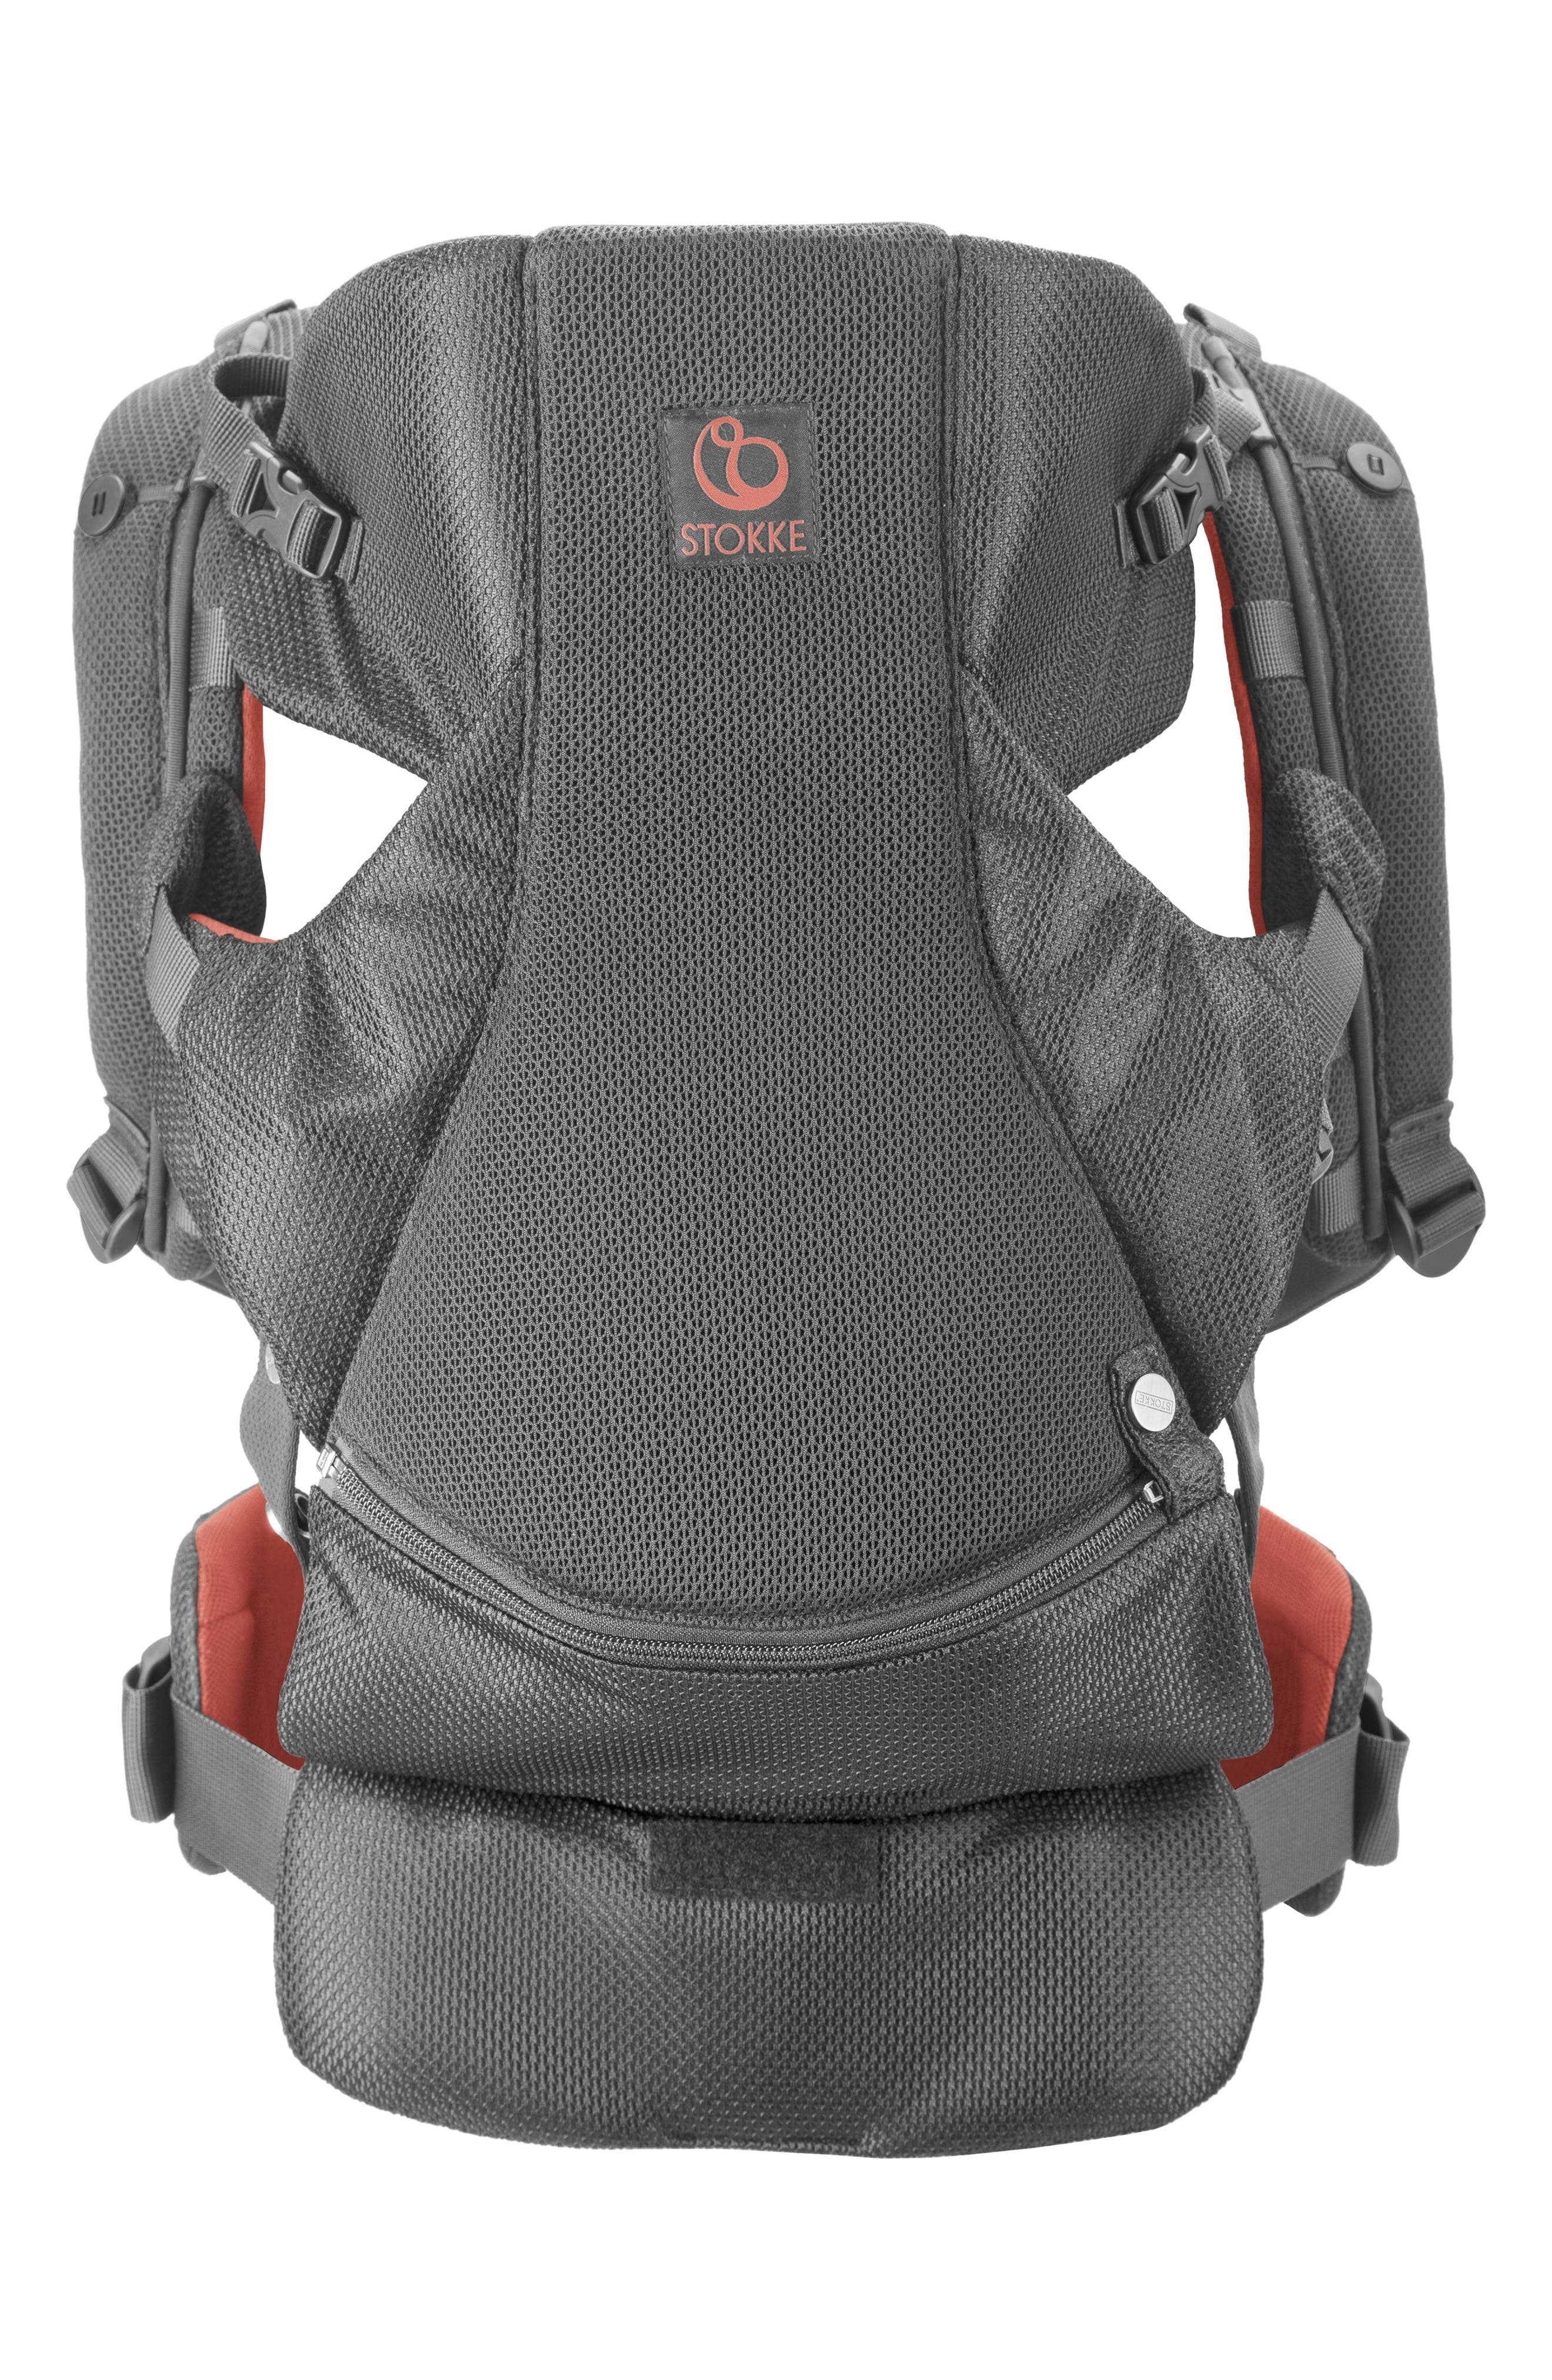 Infant Stokke Mycarrier(TM) Front Baby Carrier Size One Size  Coral